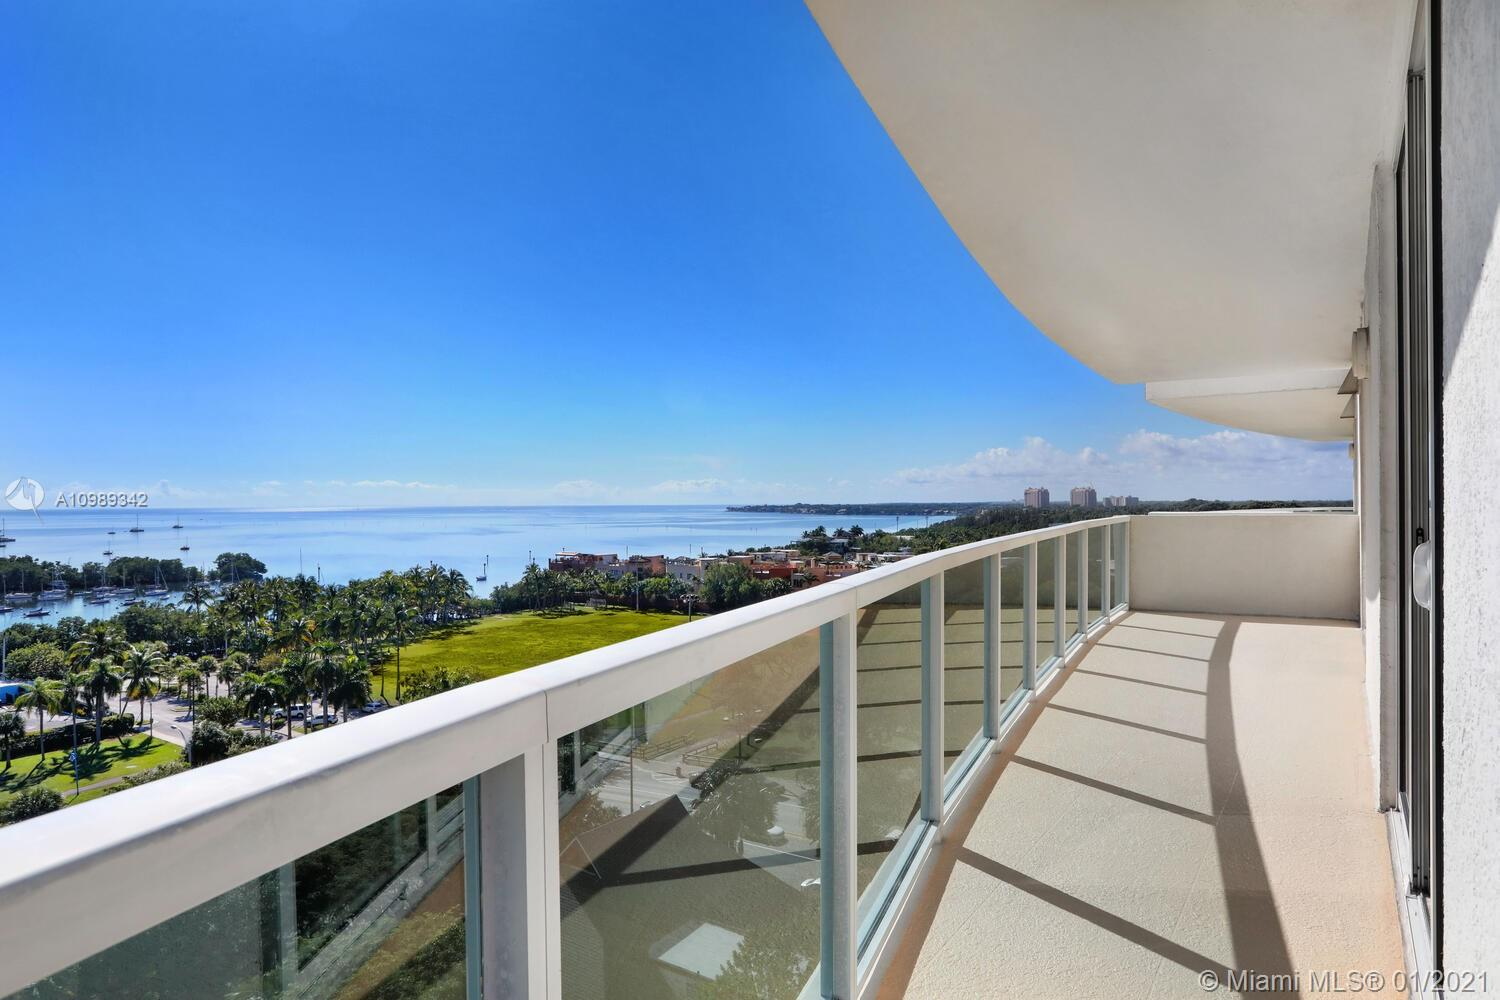 Enjoy spectacular views of Biscayne Bay from this light-filled residence in the heart of the Coconut Grove village. Just steps to galleries, boutiques, cafes & bayfront parks & marinas. 2BR/2.5BA corner unit with wood flooring, open kitchen & wrap-around balcony. Full-service, luxury building offers option to participate in hotel rental program for part-time residents (no rental restrictions ). 1st class amenities include pool & restaurant overlooking the bay, fitness center with sauna, squash courts, business center & 24 hr attended lobby w/ concierge. Secure garage parking ( 1 assigned space) as well as valet & street parking for guests. Minutes to downtown, MIA, Brickell, Coral Gables, Key Biscayne and the Beaches.